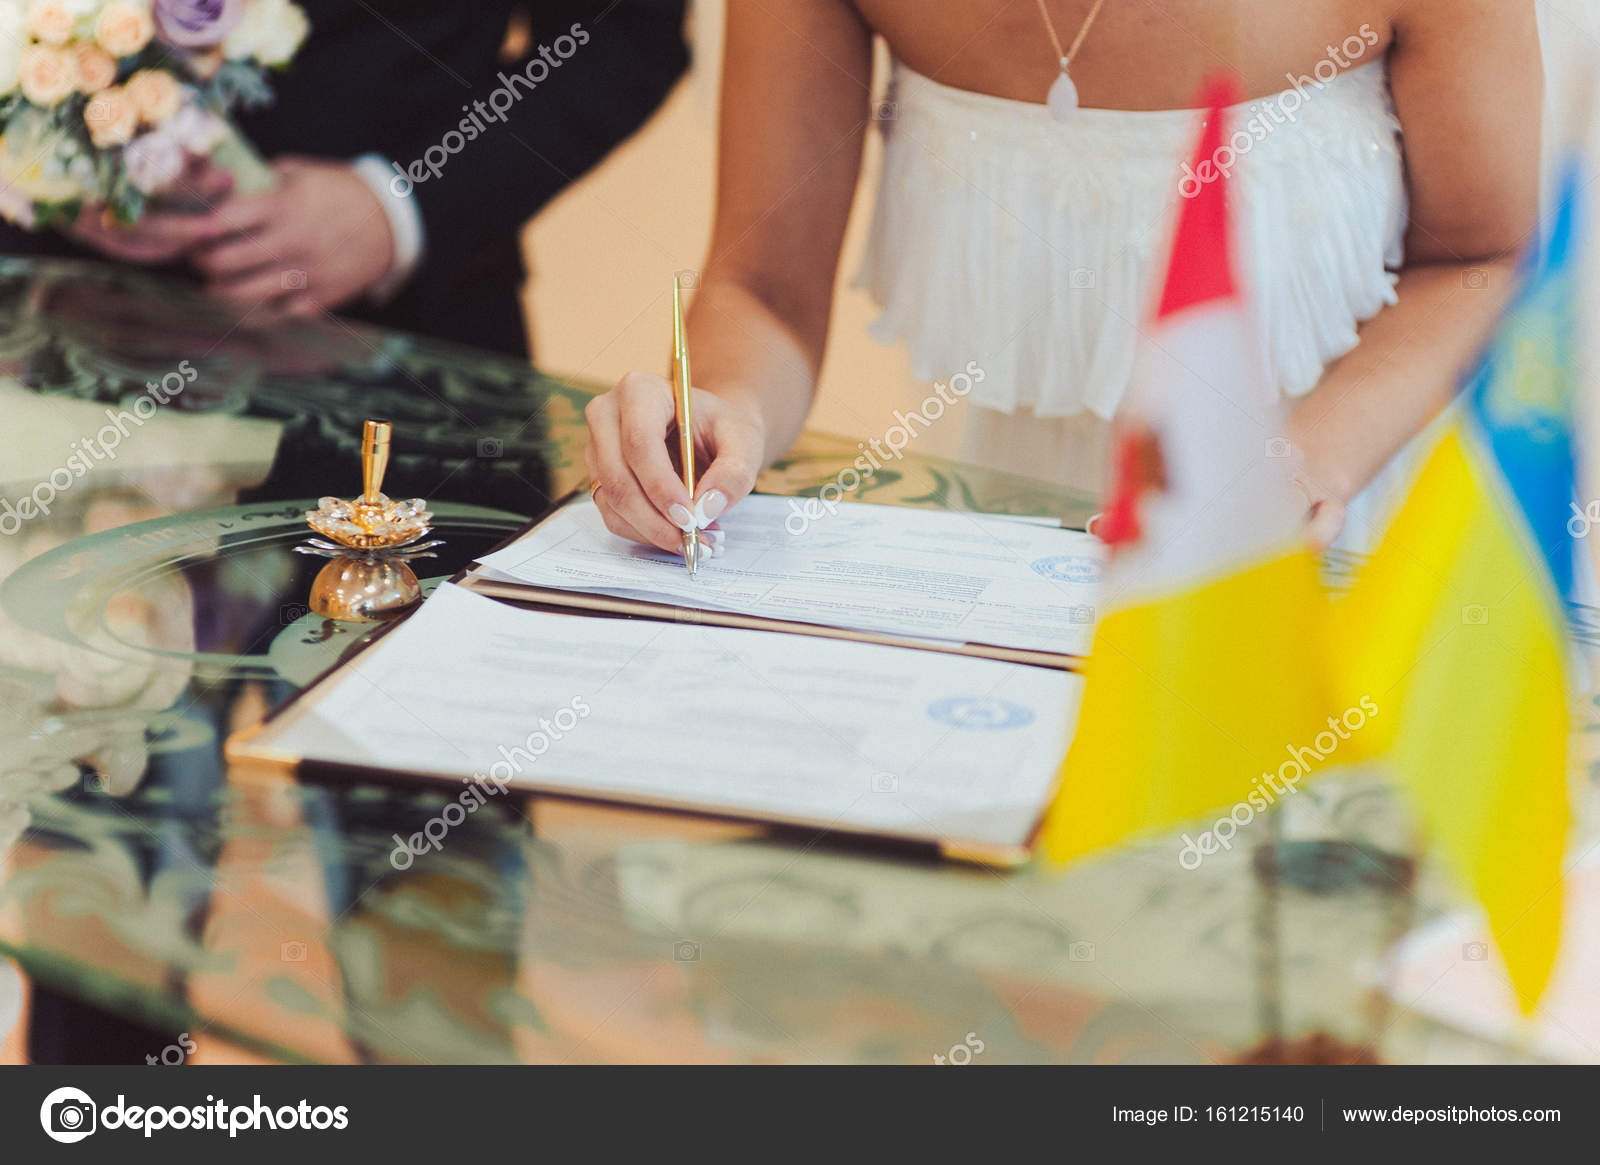 Bride documents that belonged to